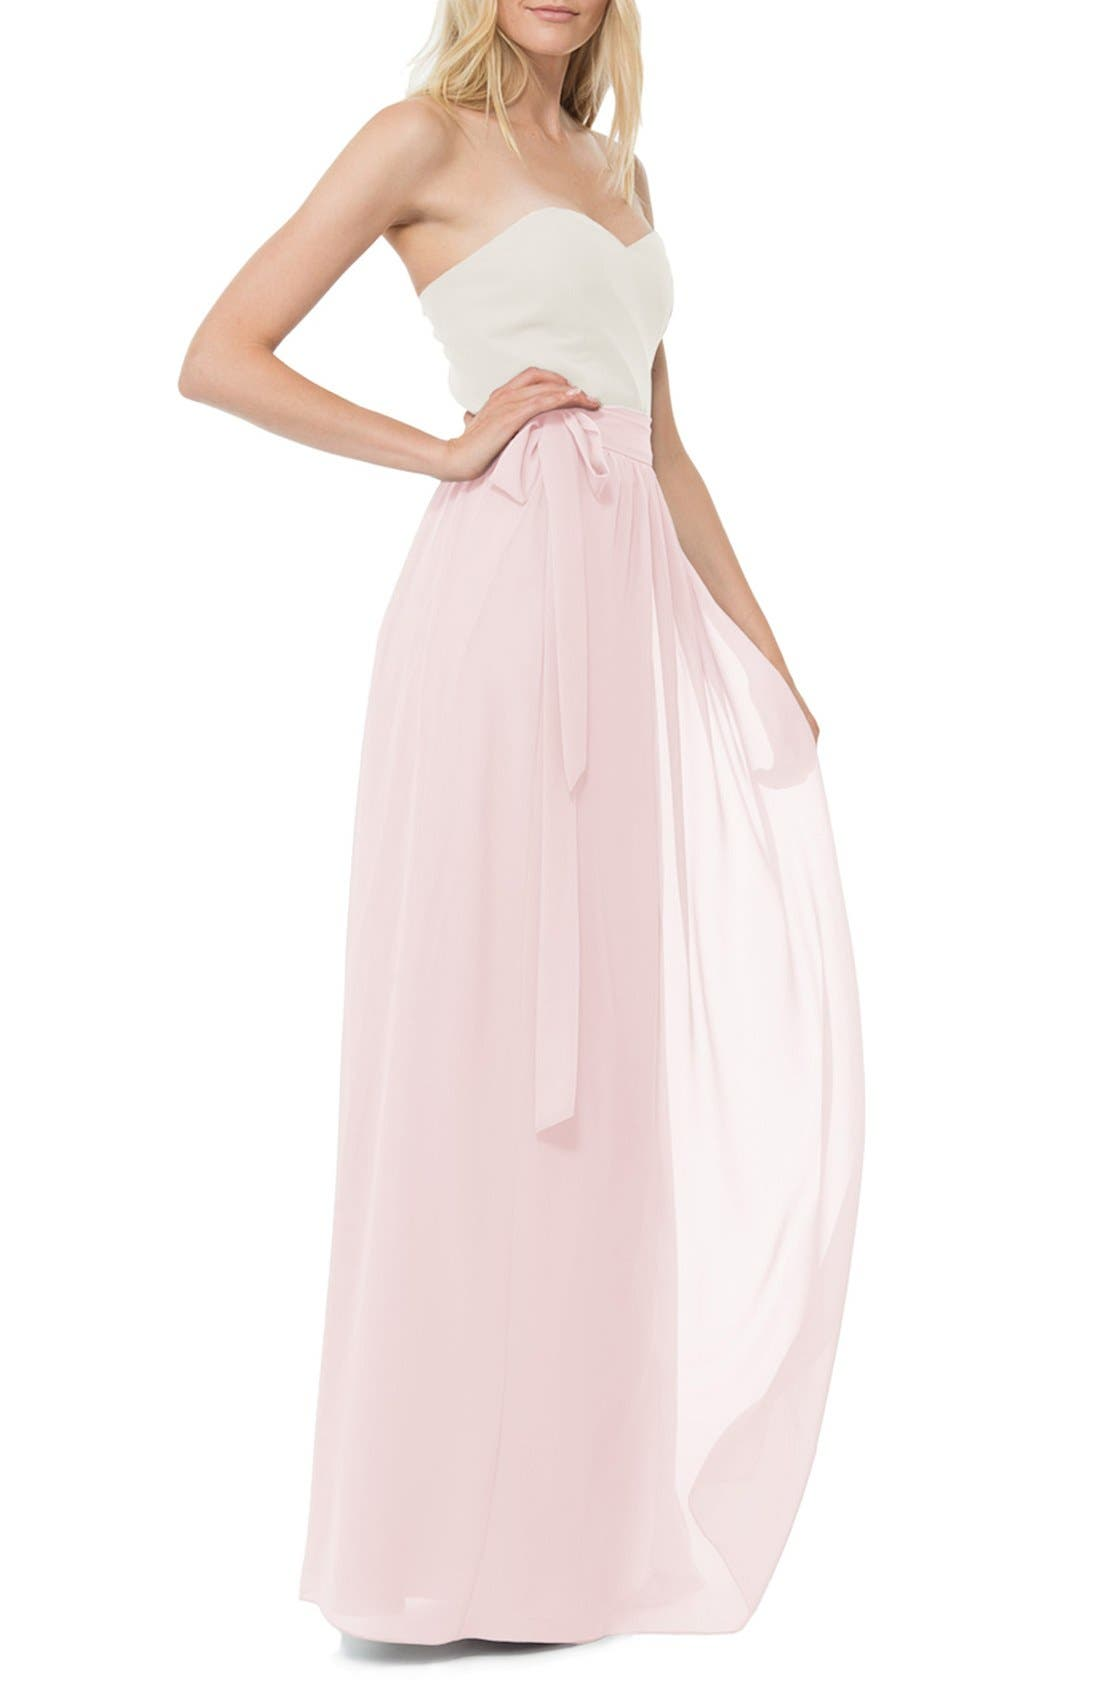 CEREMONY BY JOANNA AUGUST 'Whitney' Chiffon Wrap Maxi